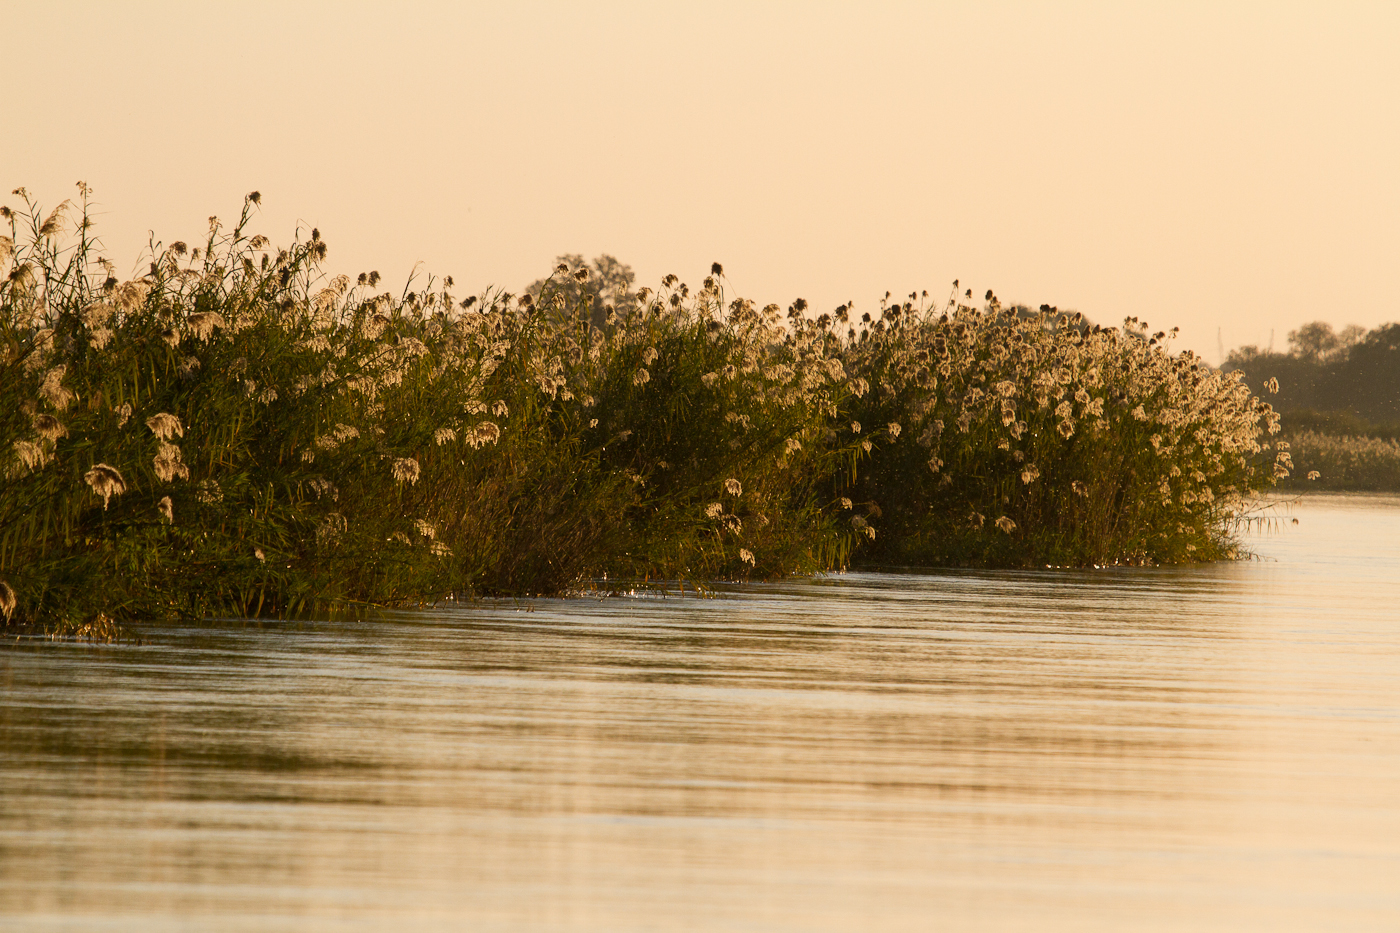 Papyrus grass on the Okavango River near Ngepi Camp